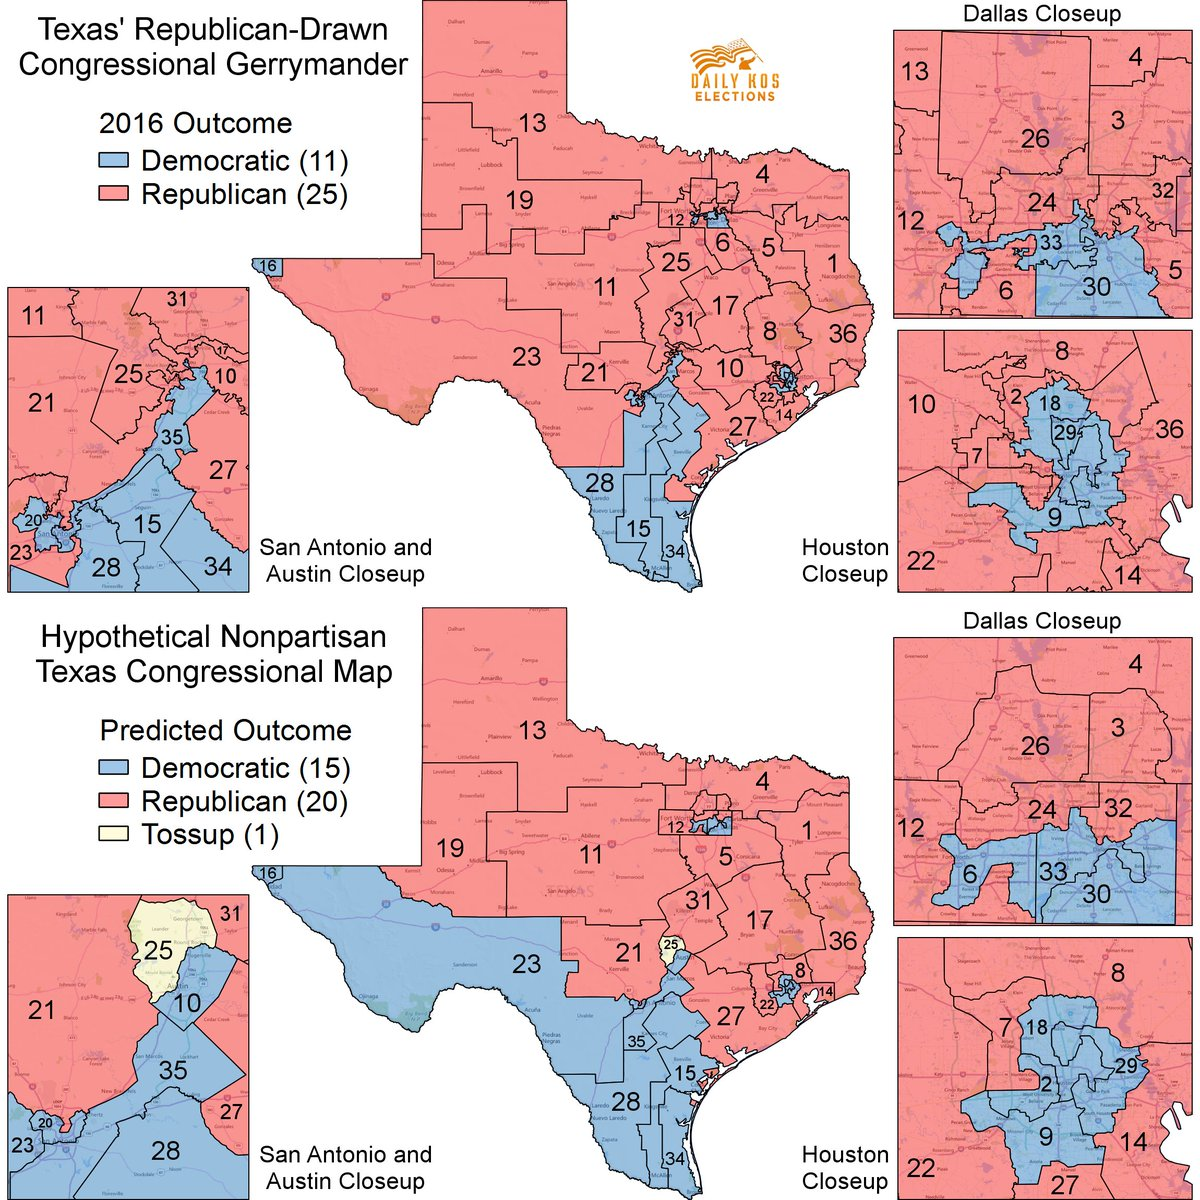 Map Of Texas Voting Results 2016.Stephen Wolf On Twitter While We Wait For Texas Primary Results To